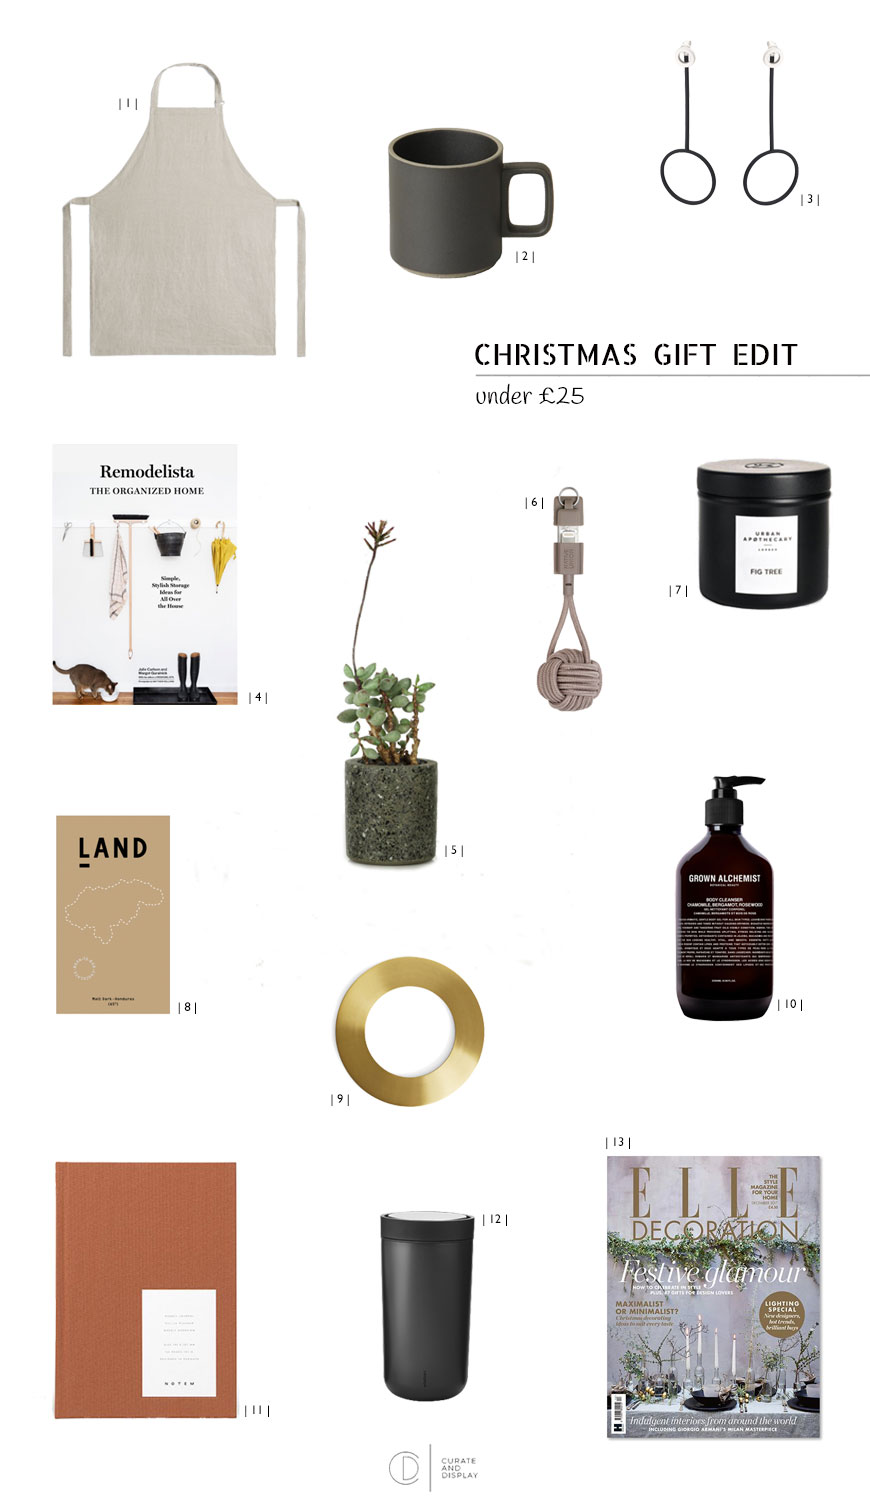 Christmas gift list, Christmas gifts under £25